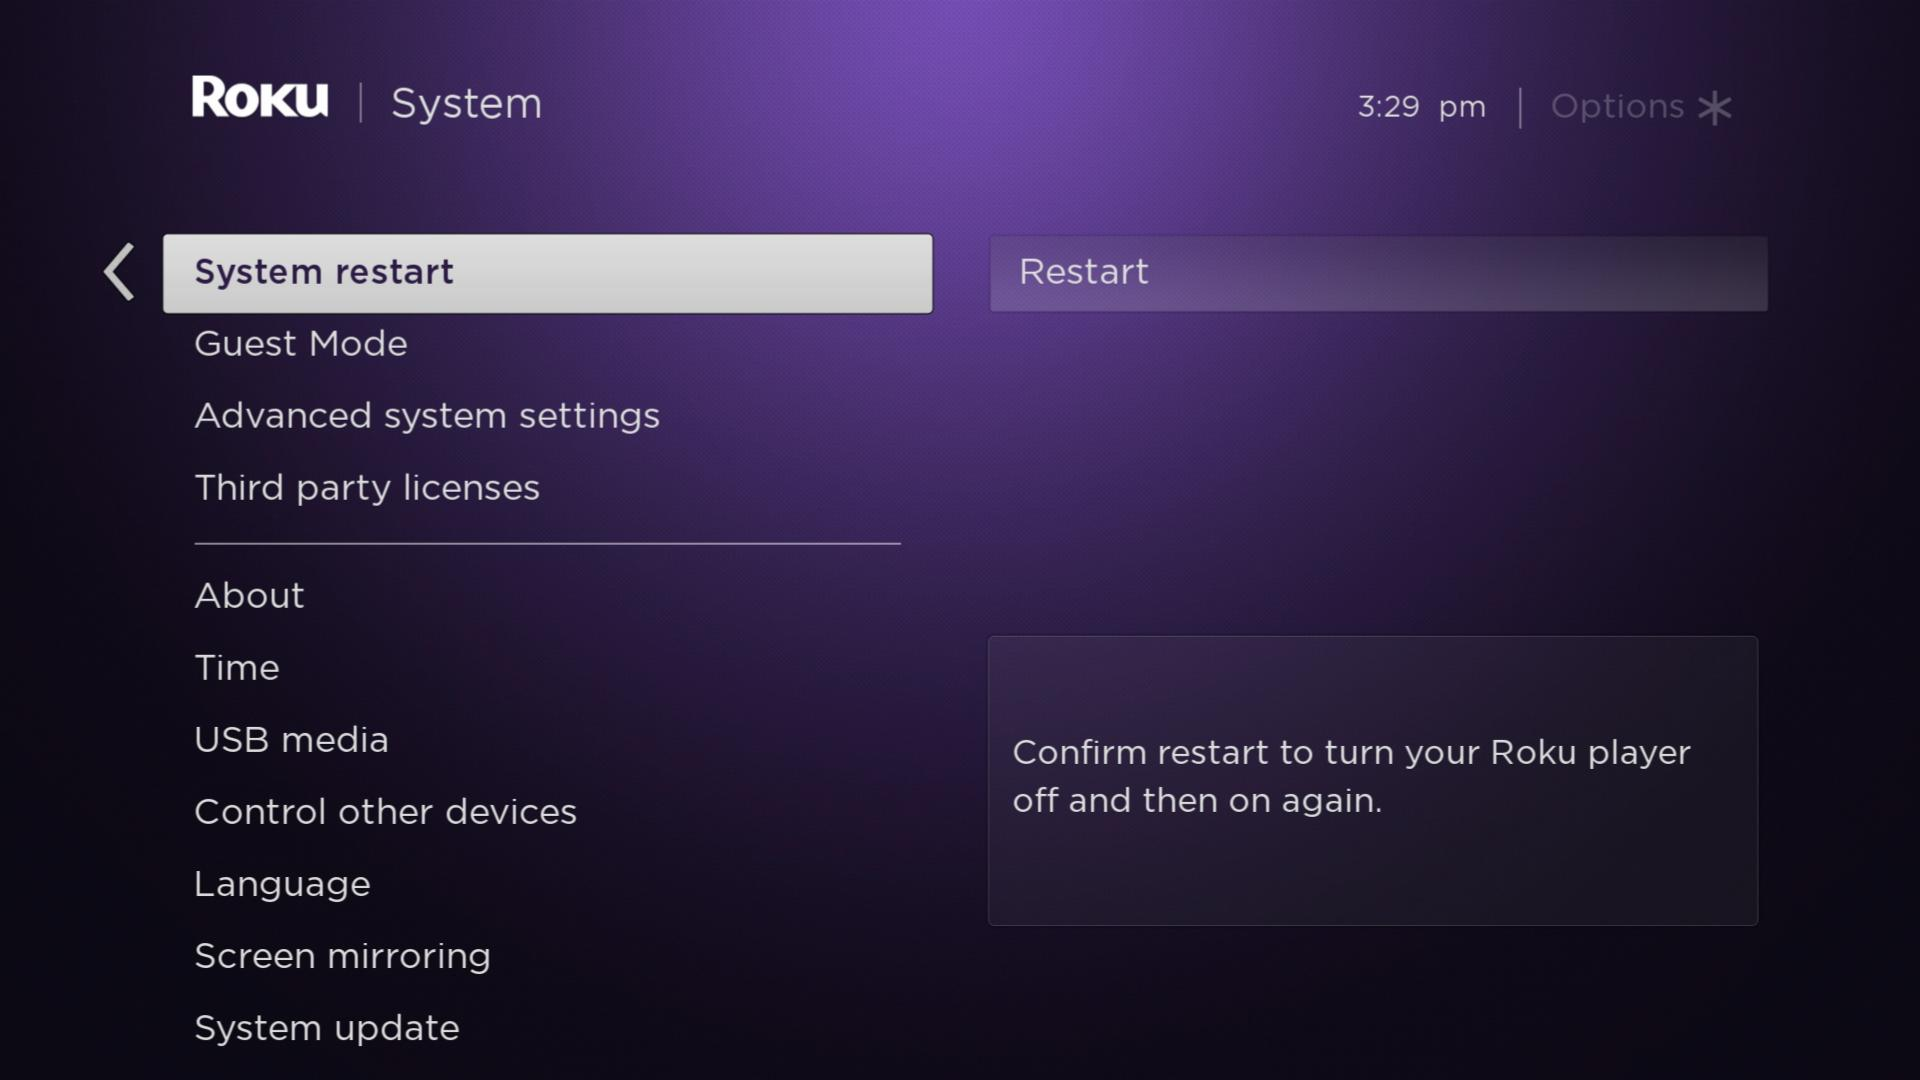 How to Restart Roku Without Unplugging It